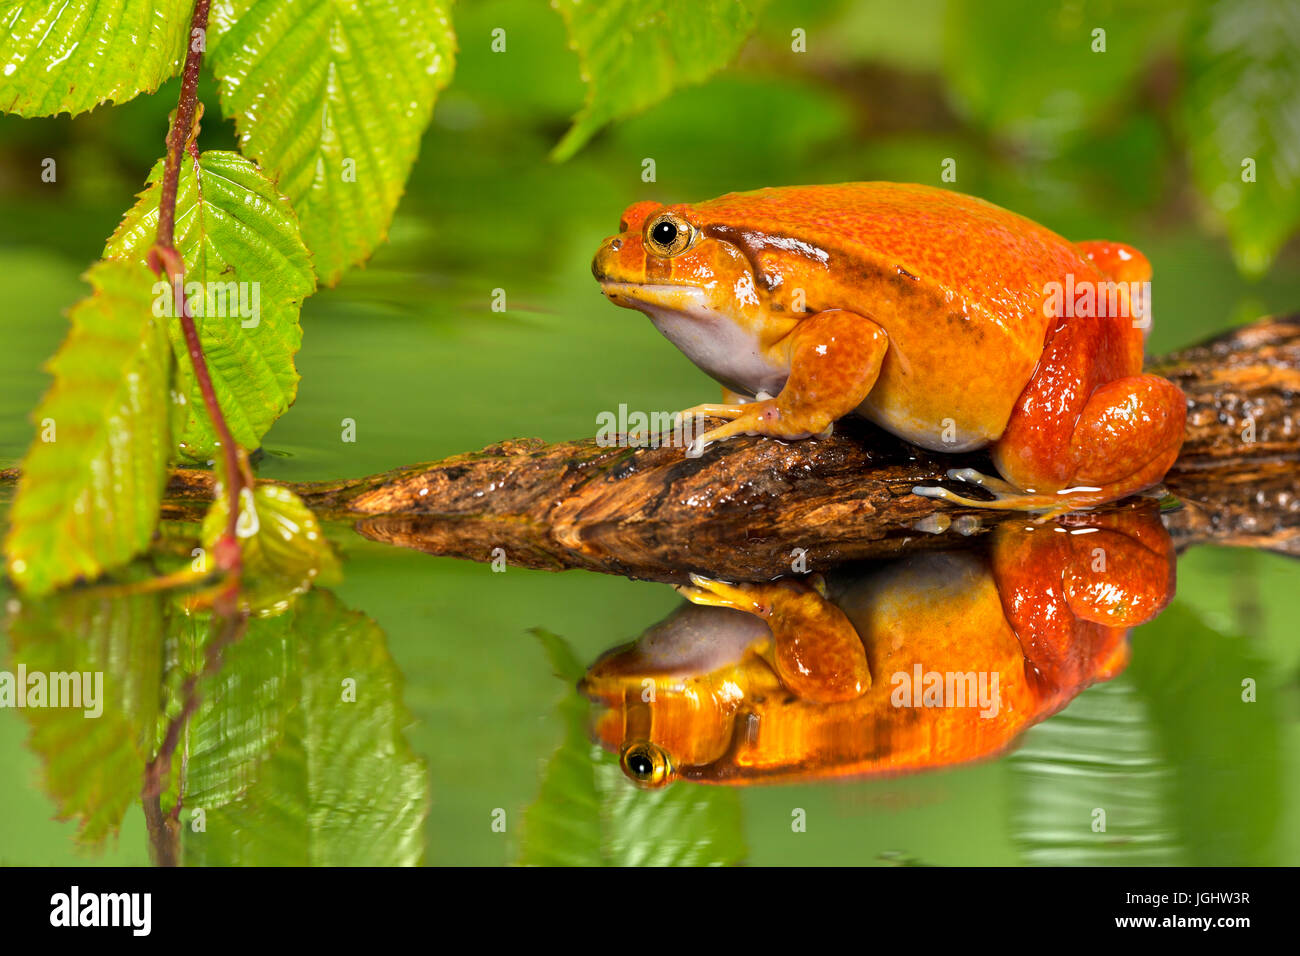 Tomato Frog in pond with reflection - Stock Image